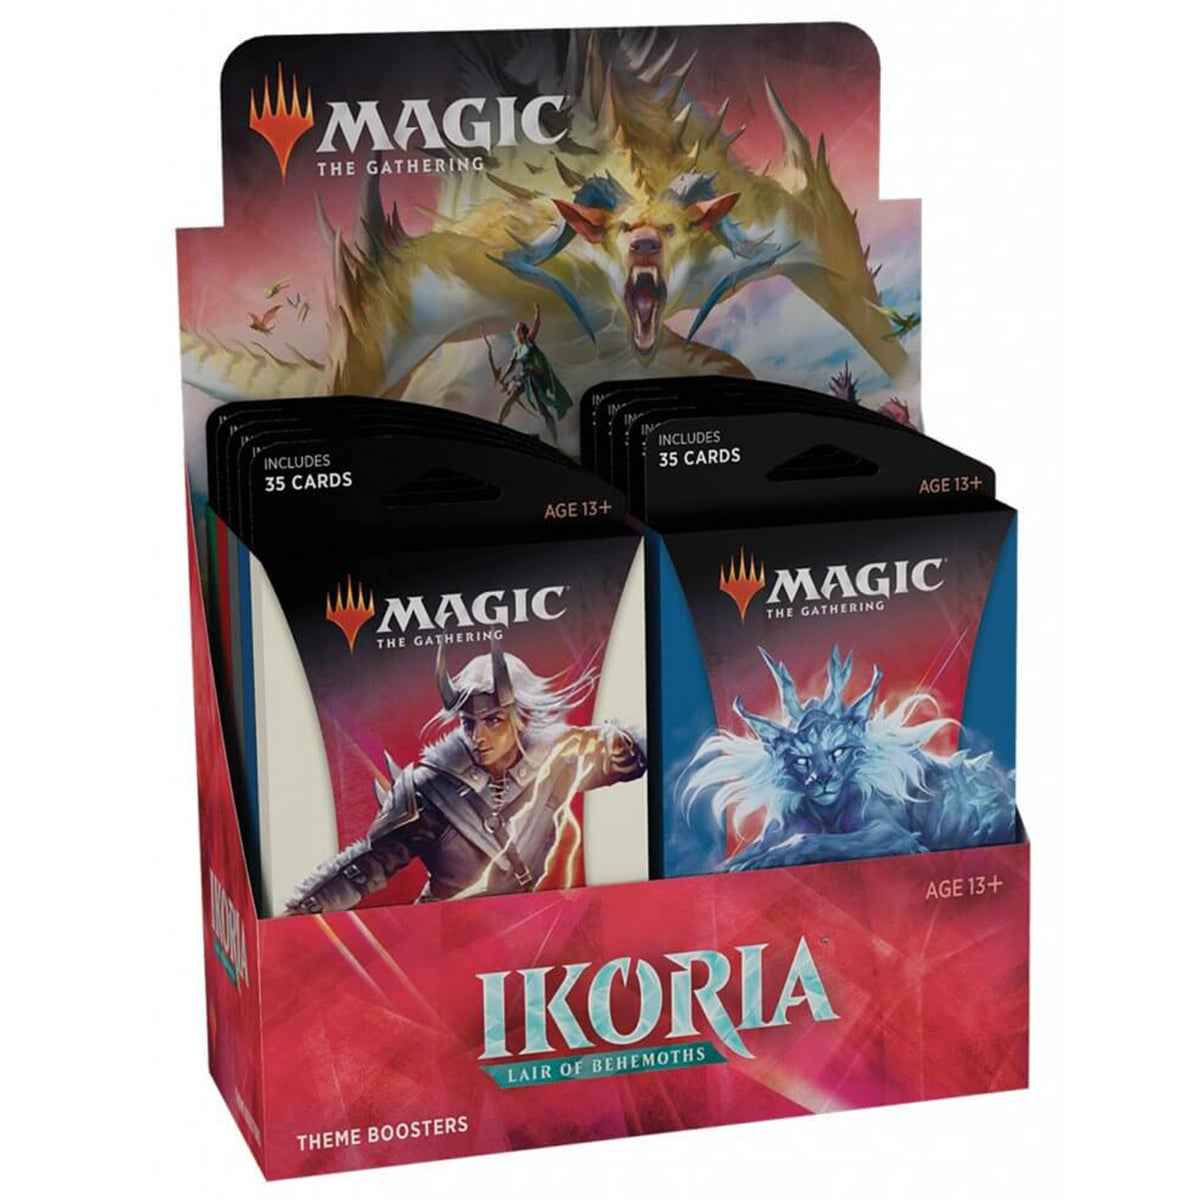 Ikoria Lair of Behemoths Theme Boosters (Set of 6) Magic The Gathering